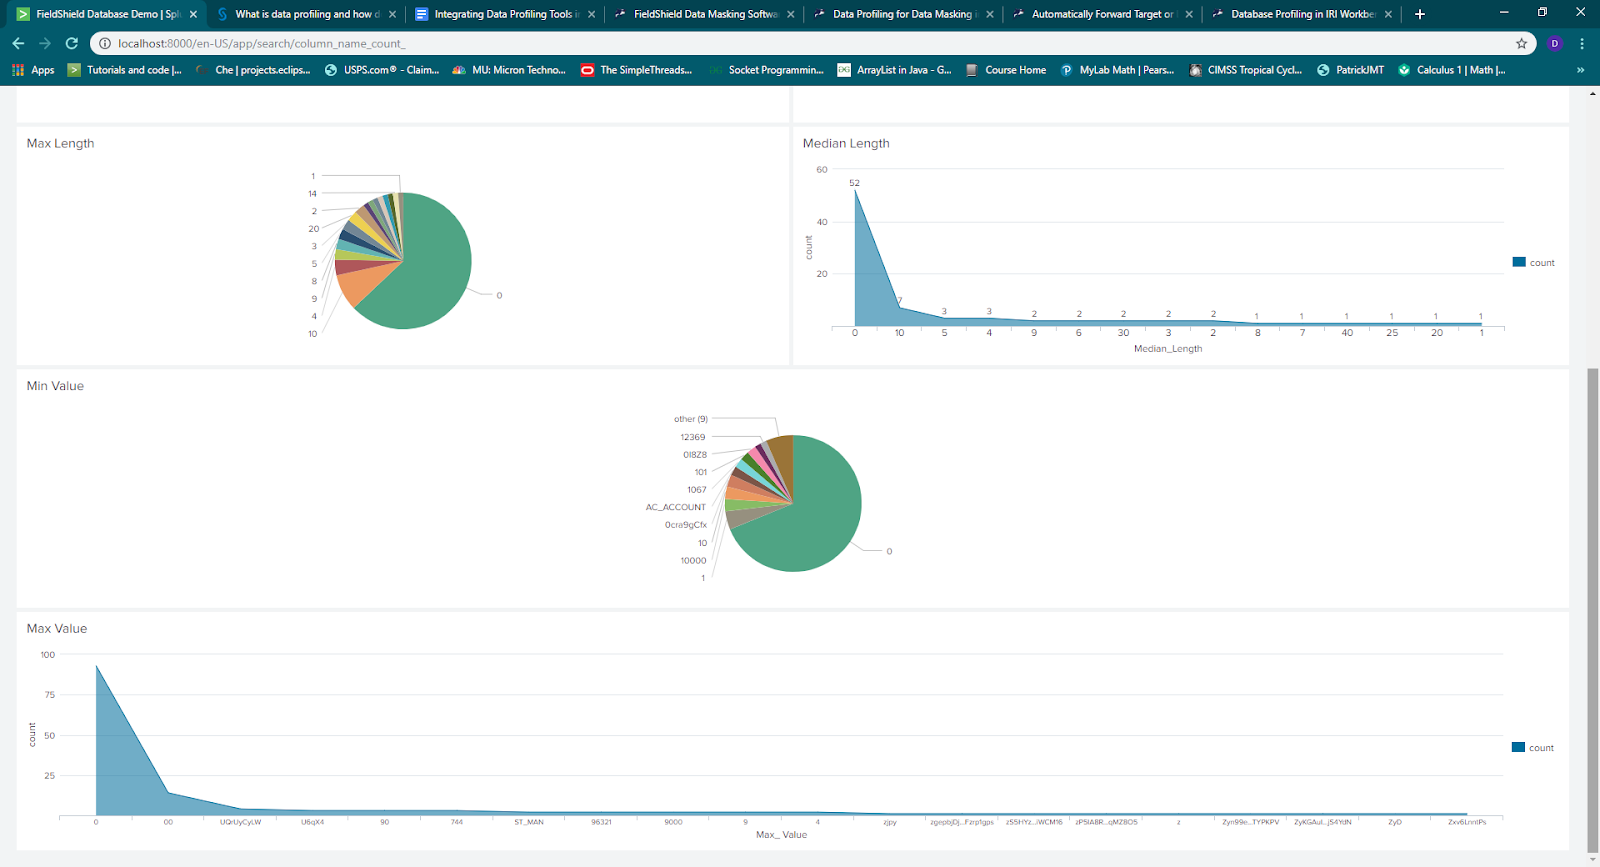 Revealing Data Profiling Secrets in Splunk - IRI